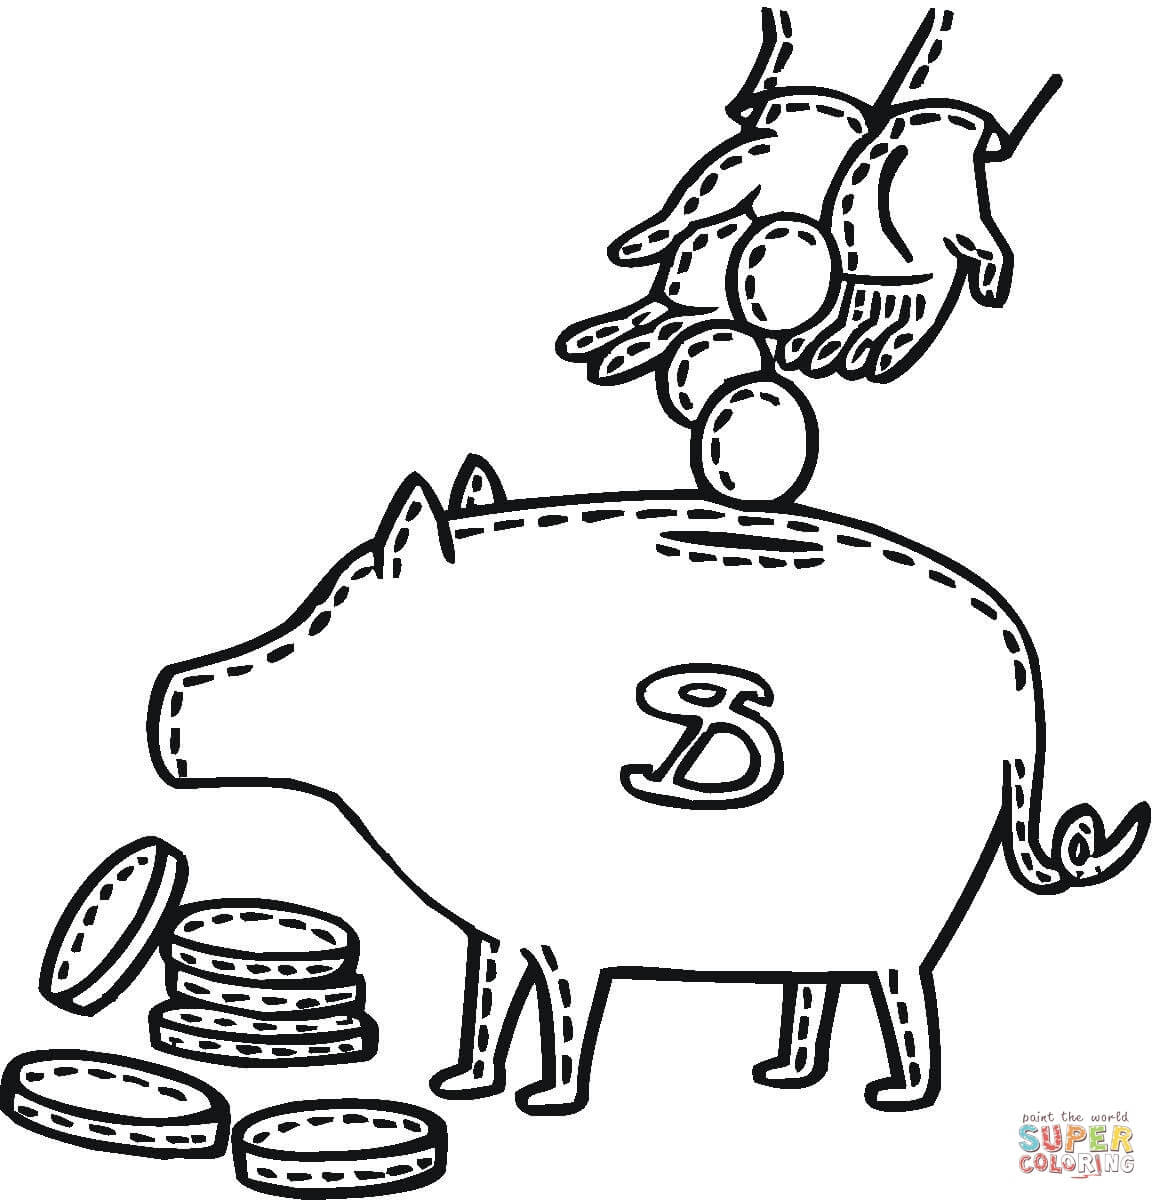 10 Free Printable Piggy Bank Coloring Pages | Top Free ...